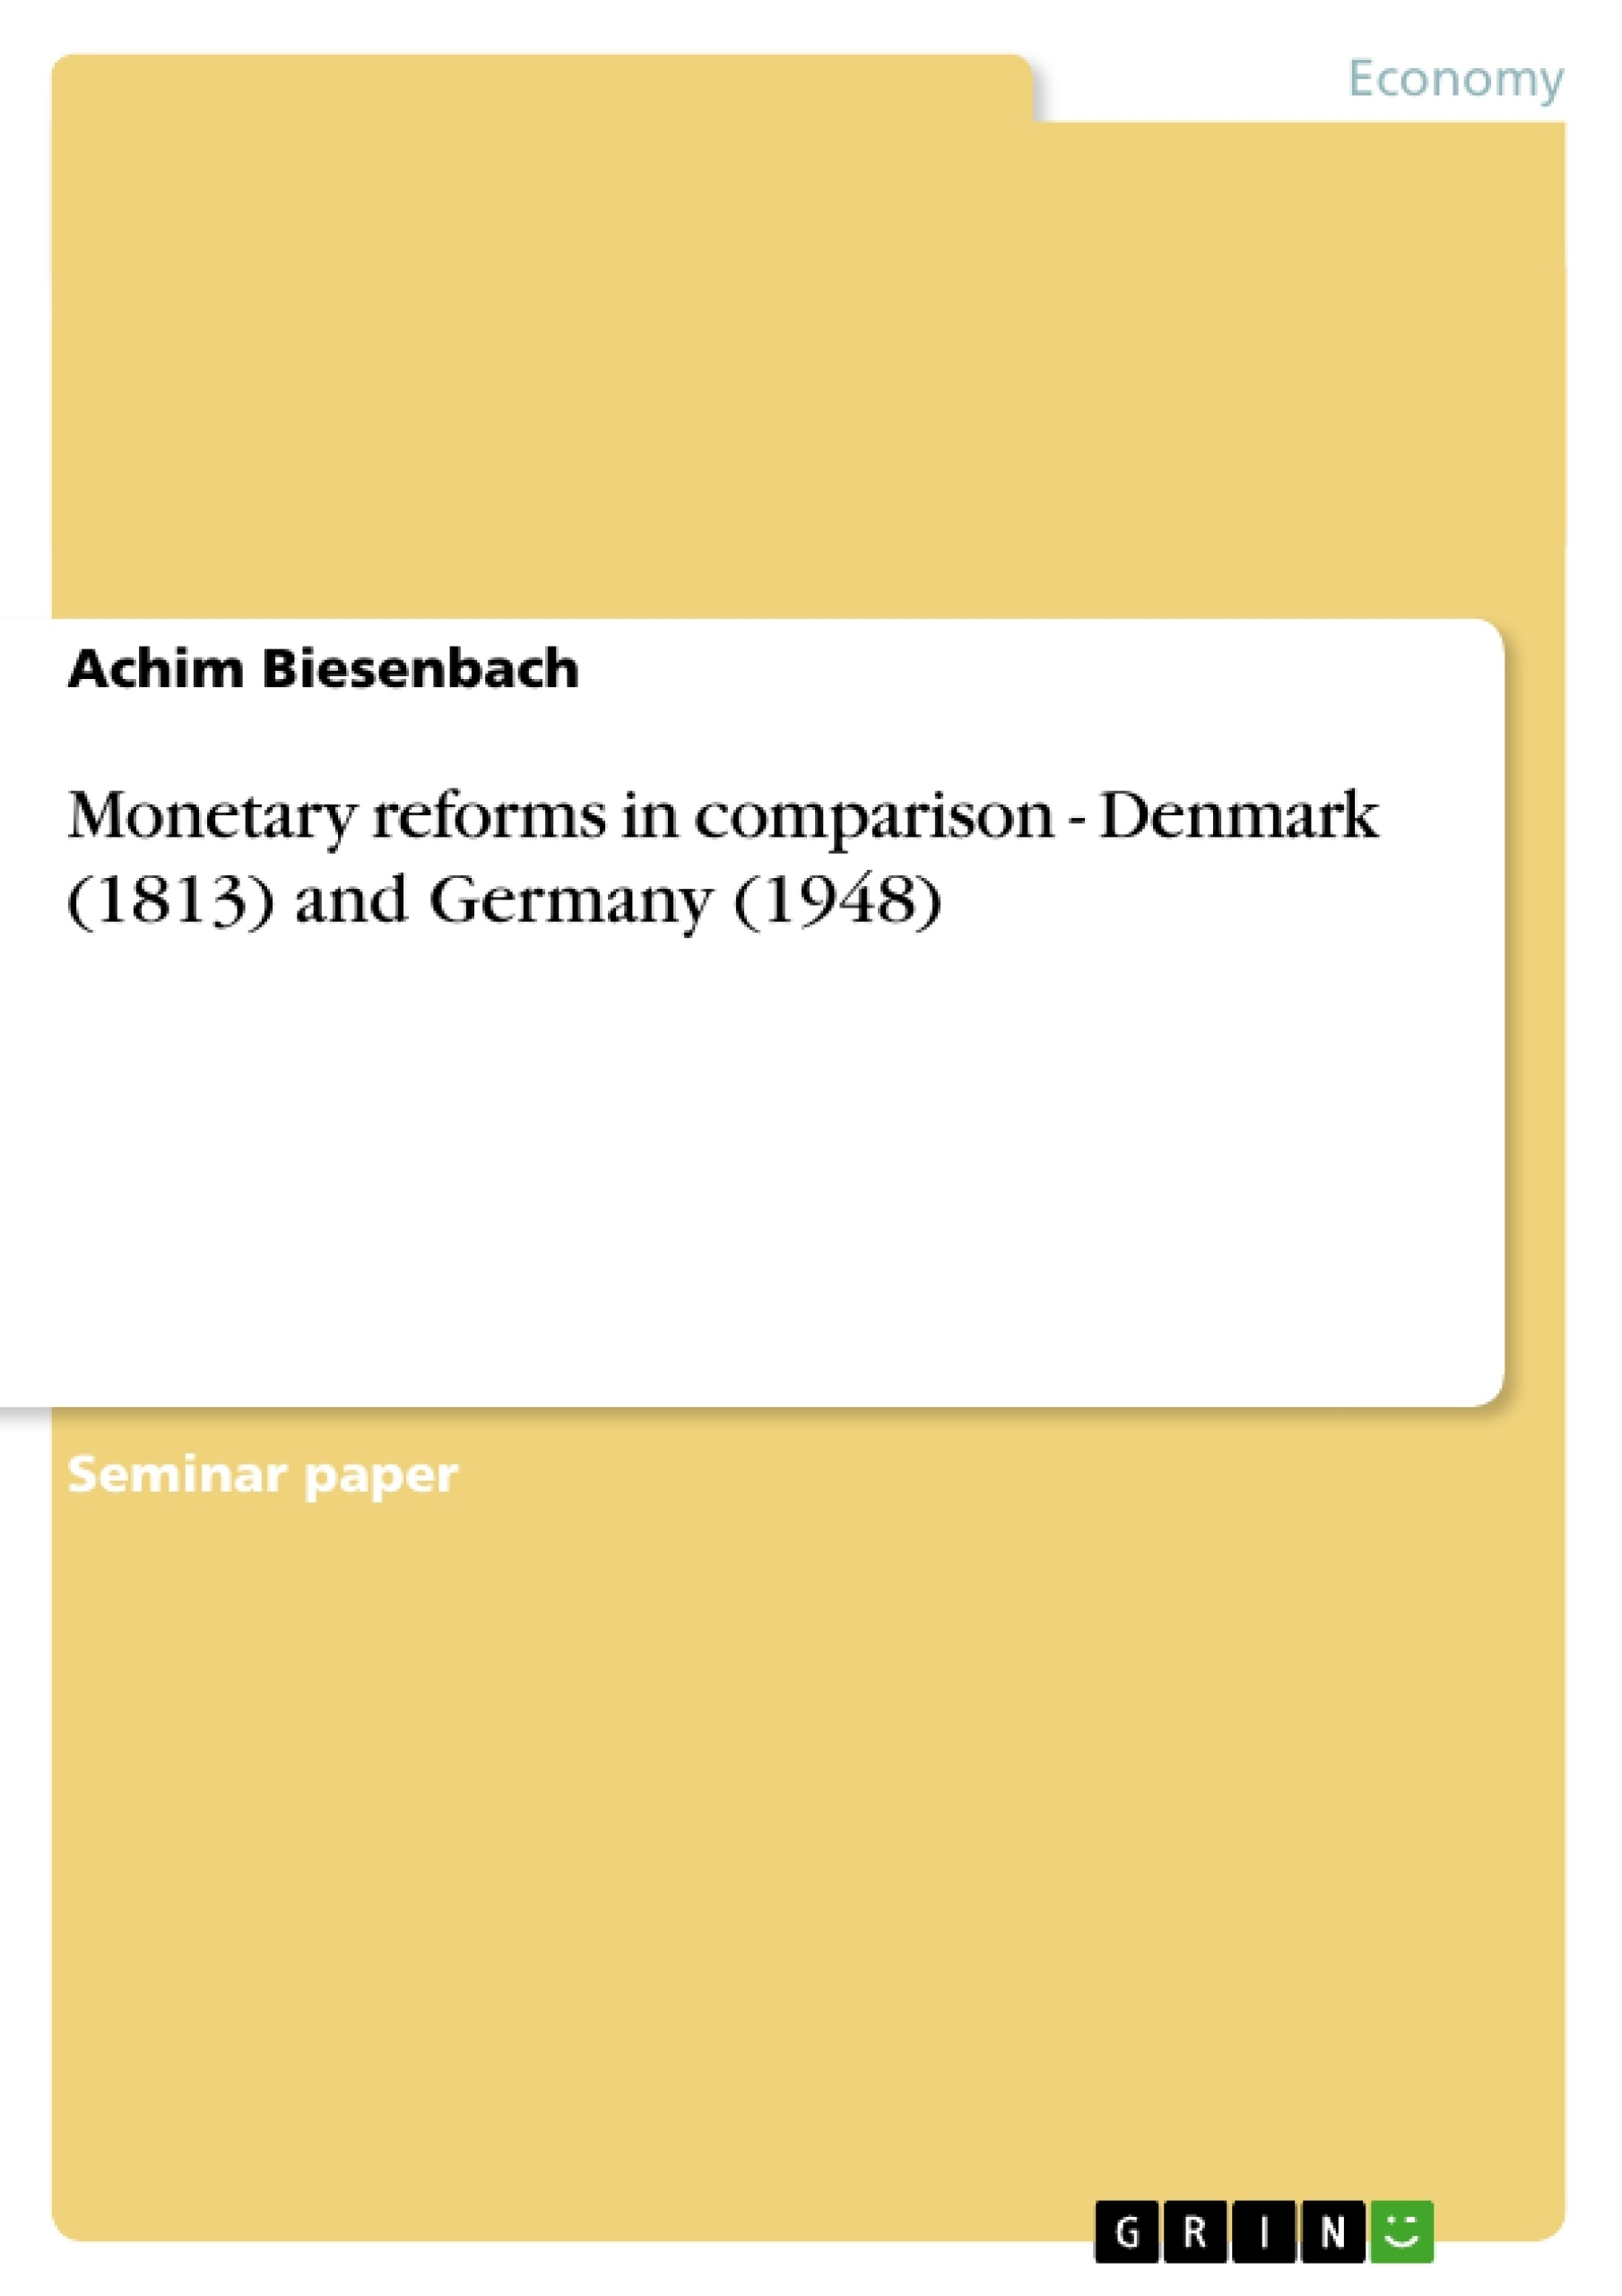 Title: Monetary reforms in comparison - Denmark (1813) and Germany (1948)